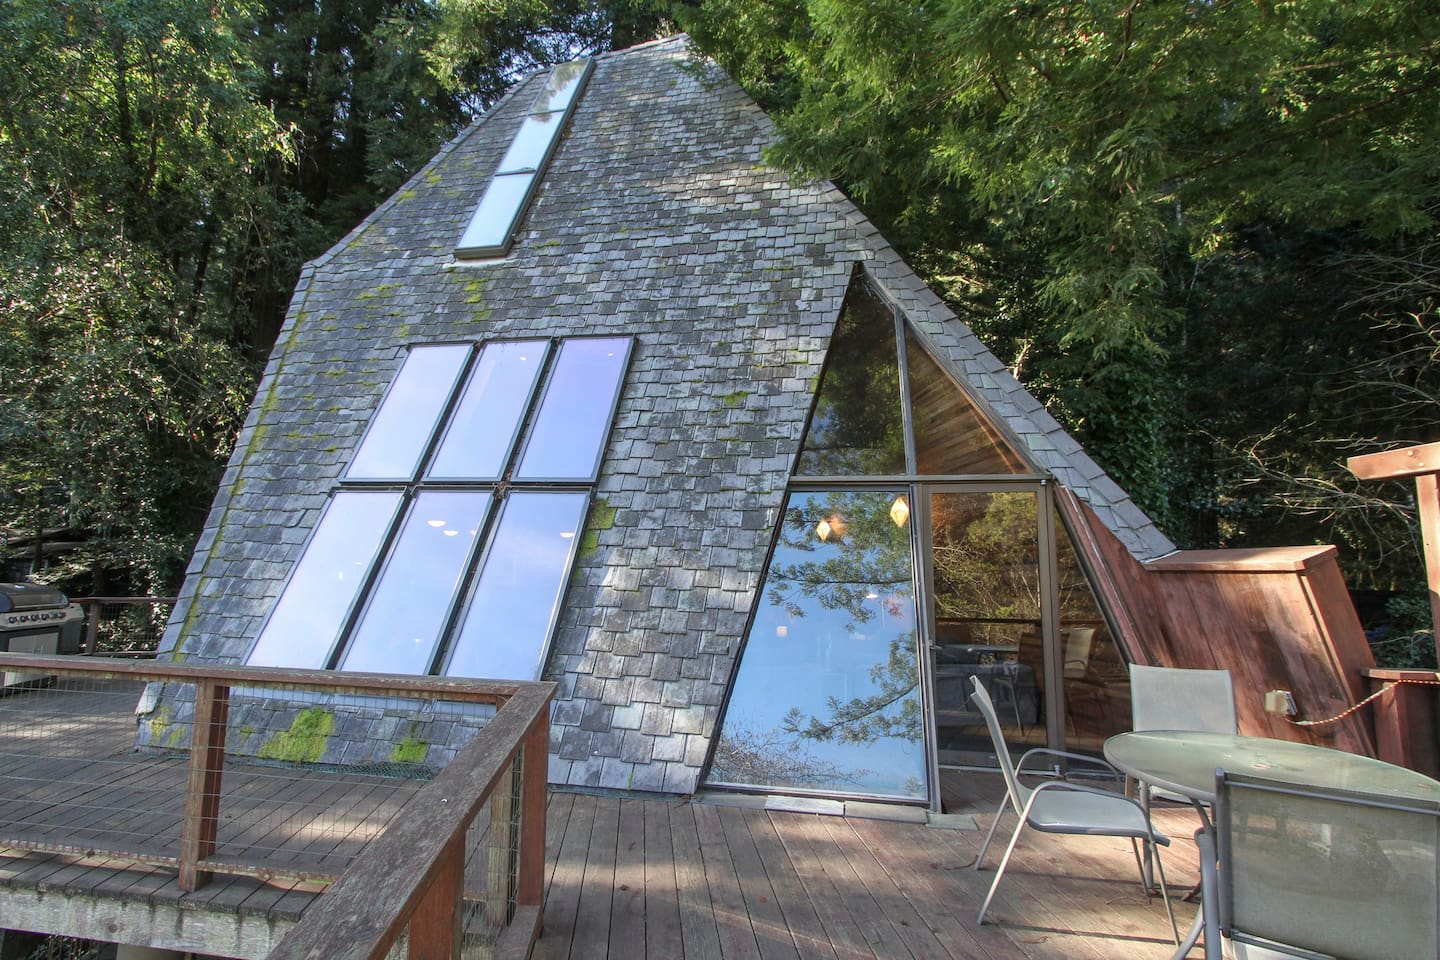 Pyramid House, an architectural delight!